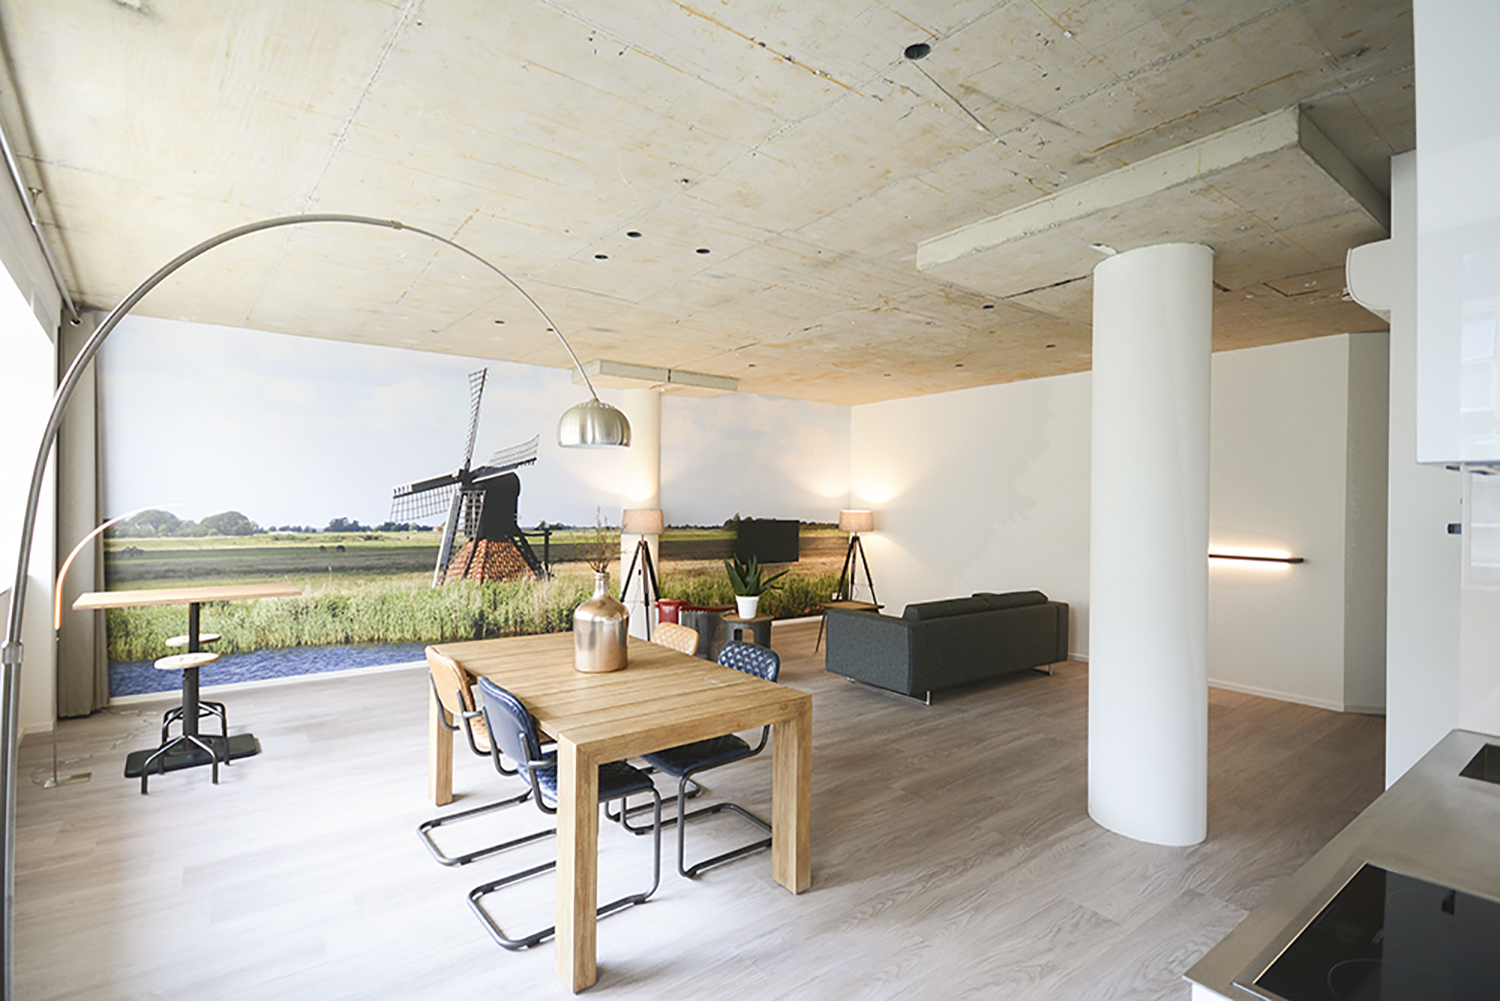 Wallstay Eindhoven woonkamer 26